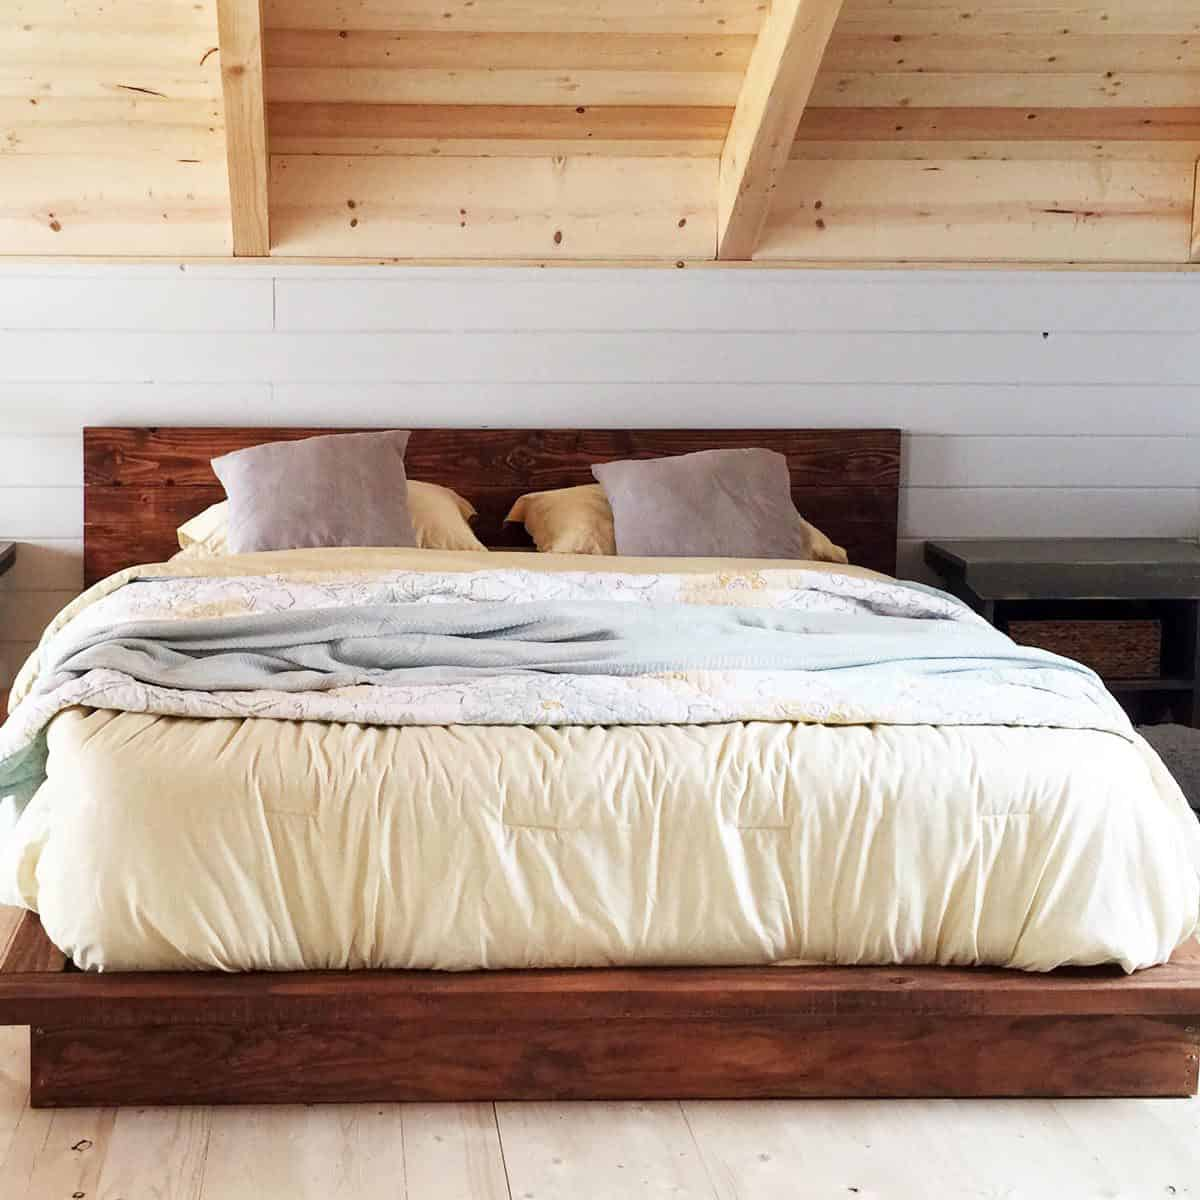 Low Platform Bed for Loft Room